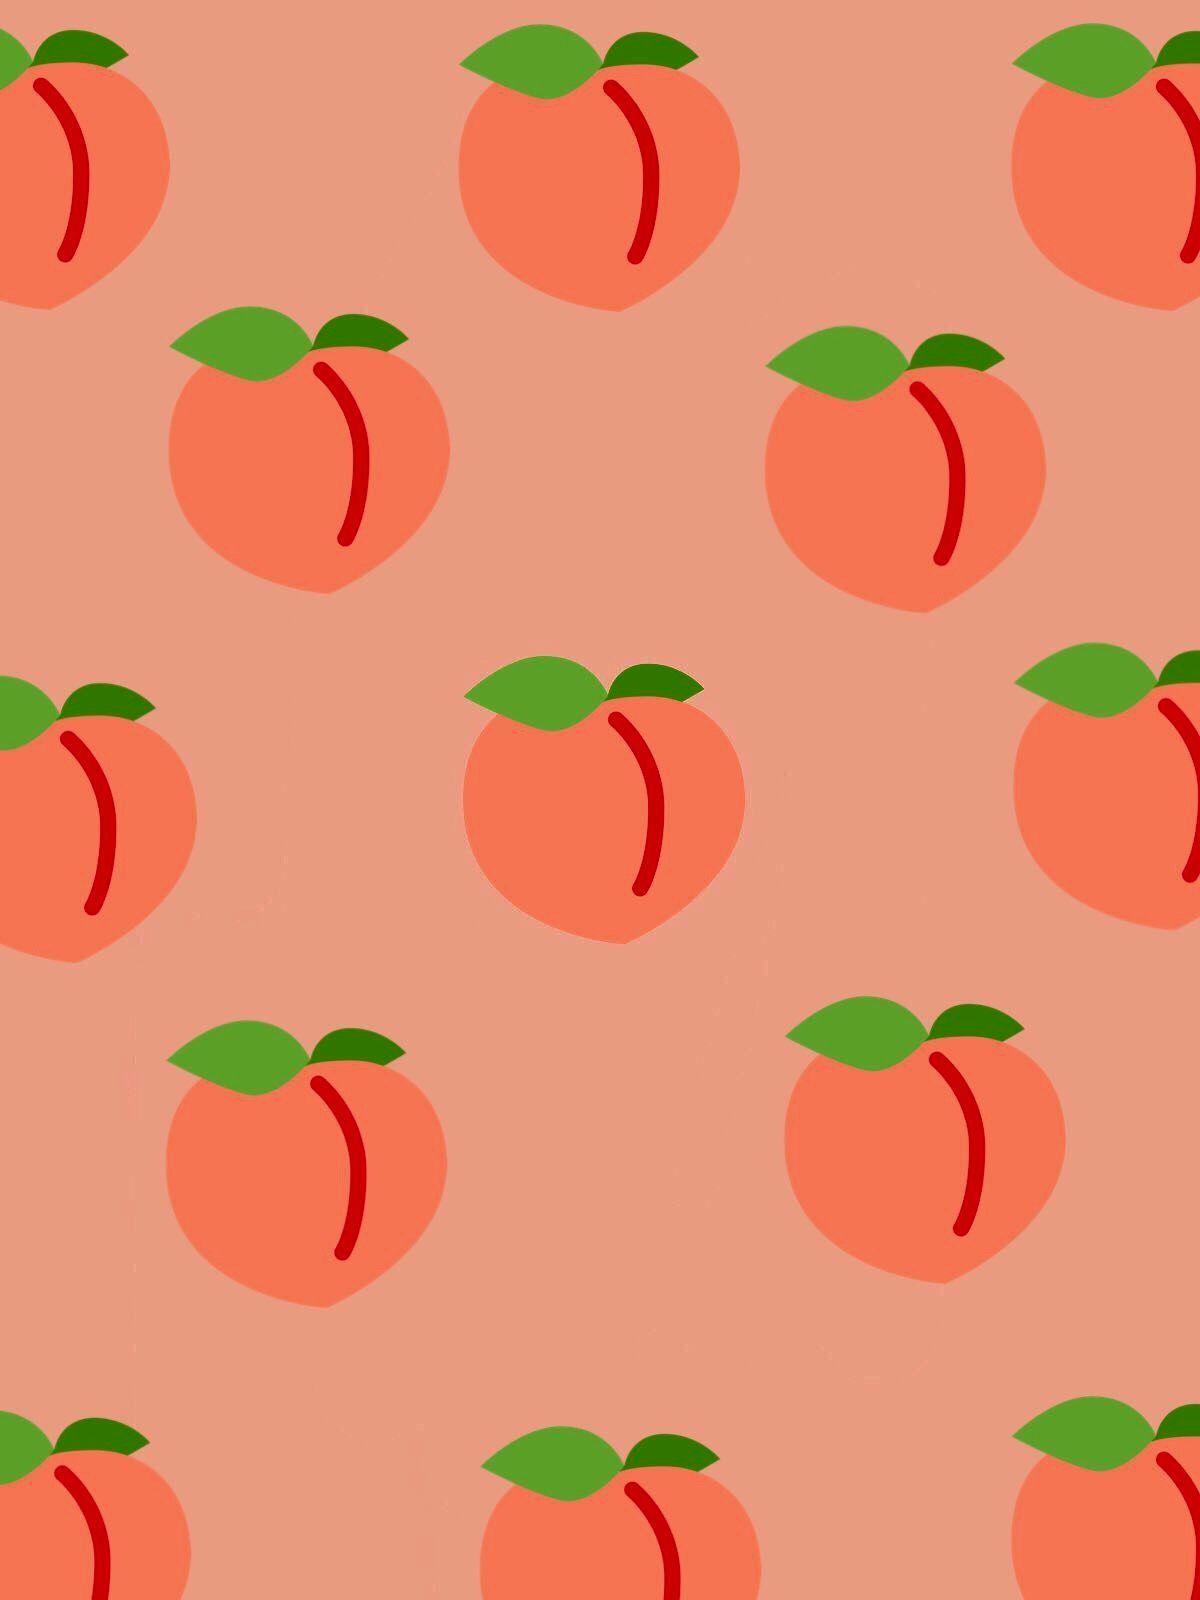 Peach Aesthetic Wallpapers - Wallpaper Cave